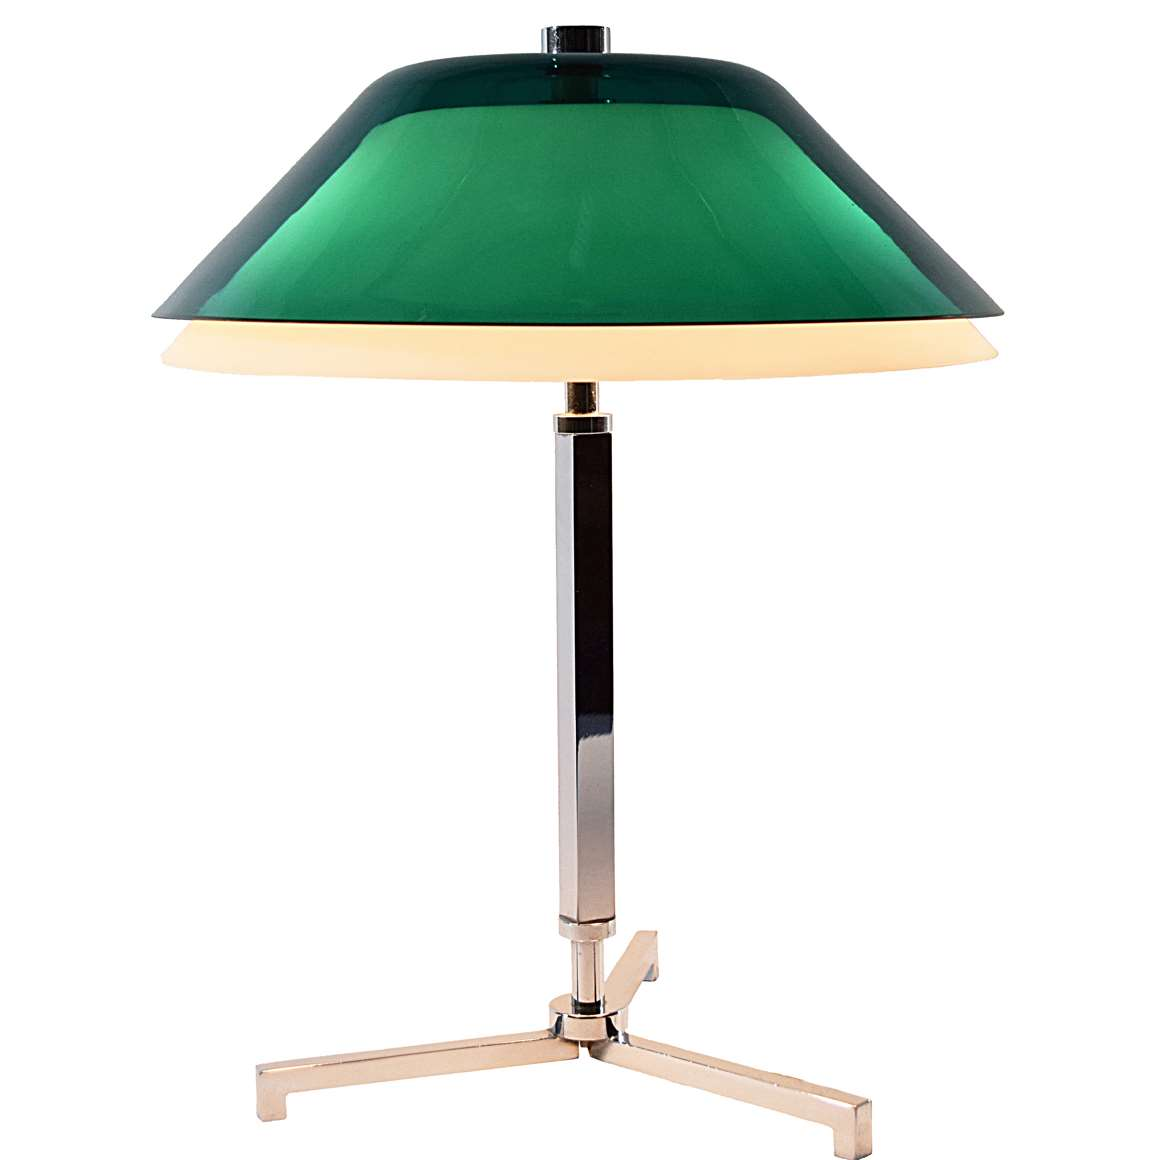 1960s Senior Desk Lamp